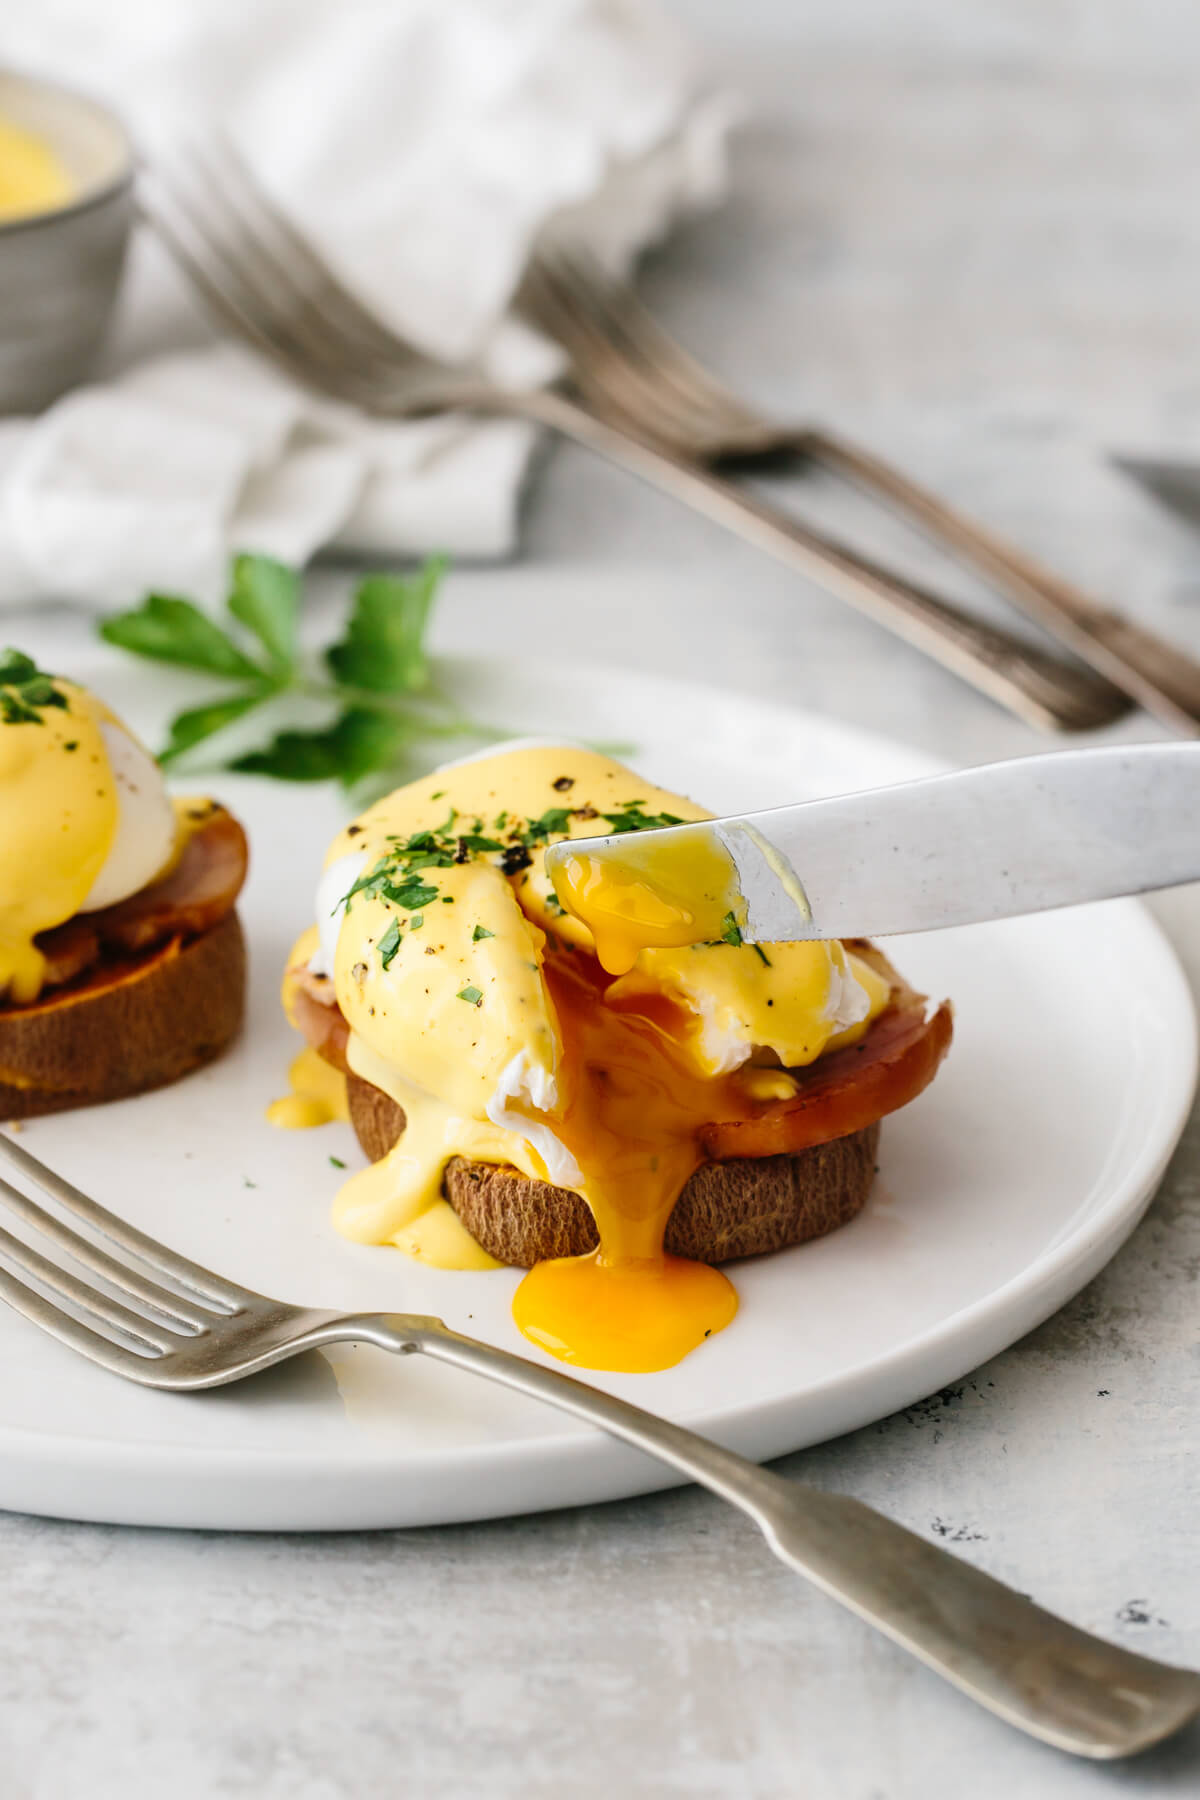 Healthy eggs benedict cut into with egg yolk oozing.